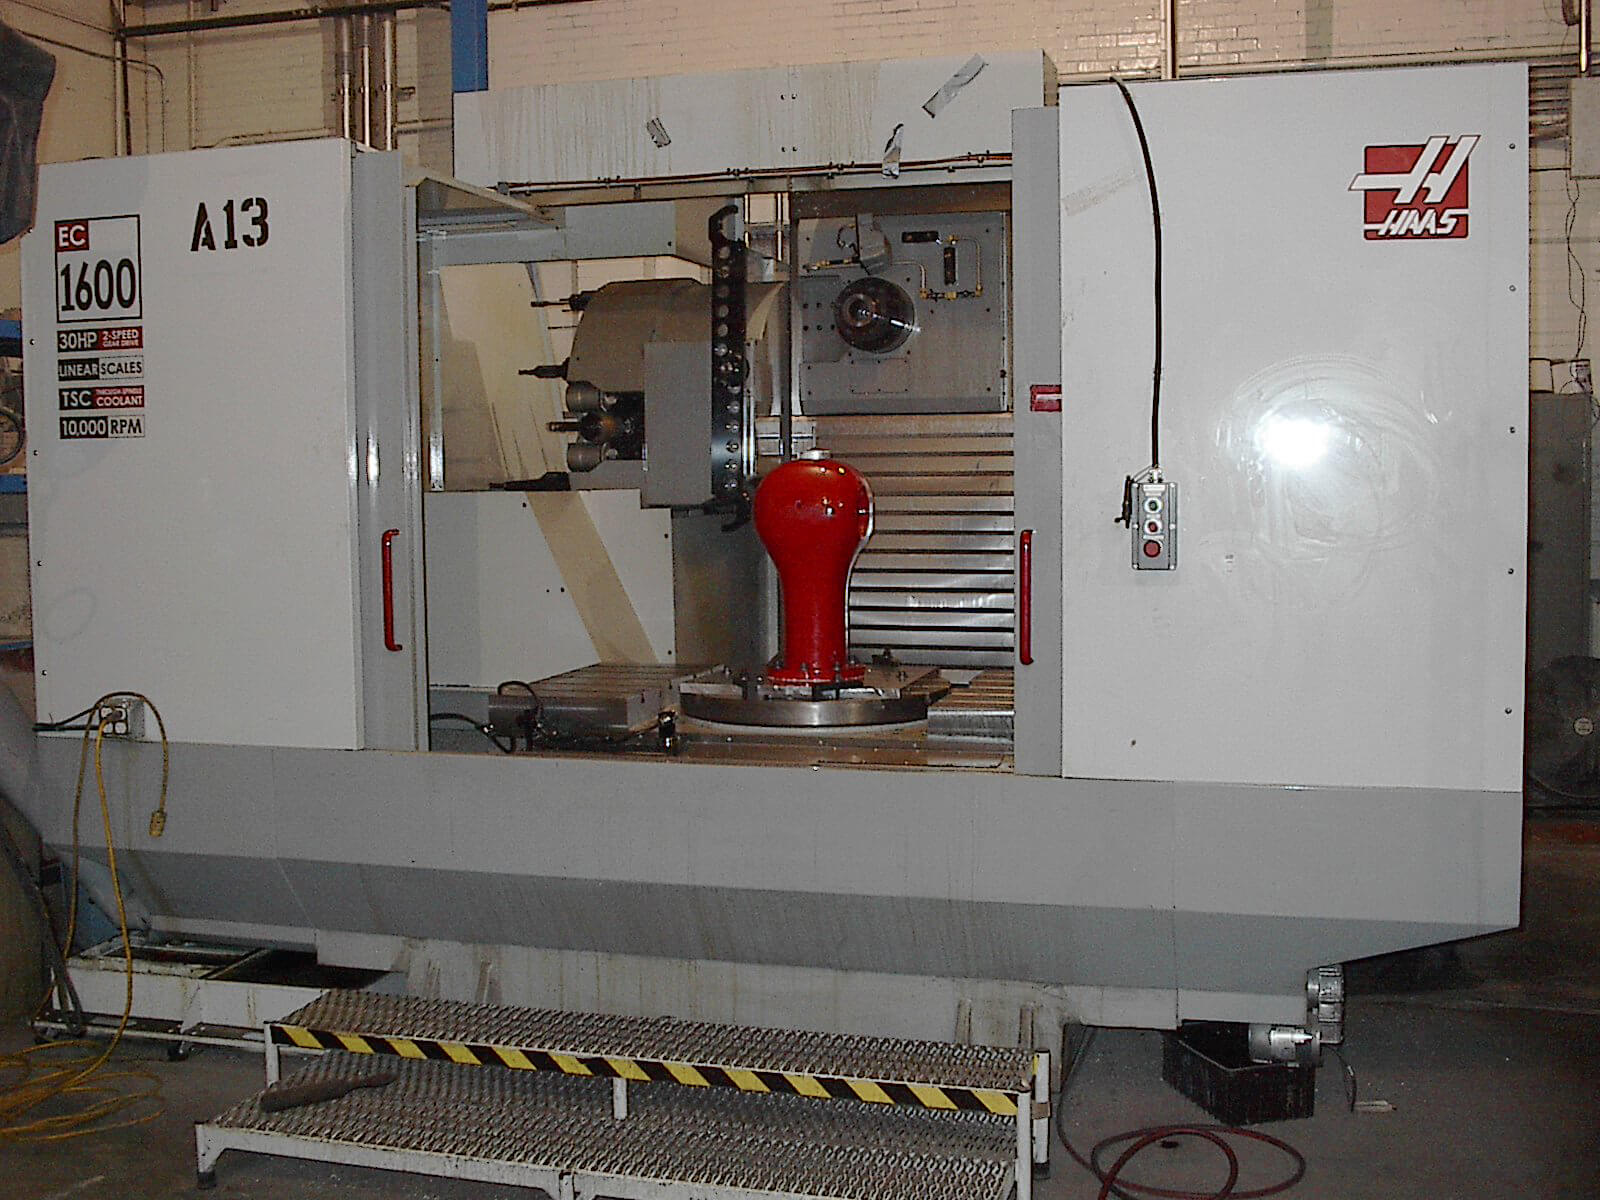 Fire hydrant in machining center